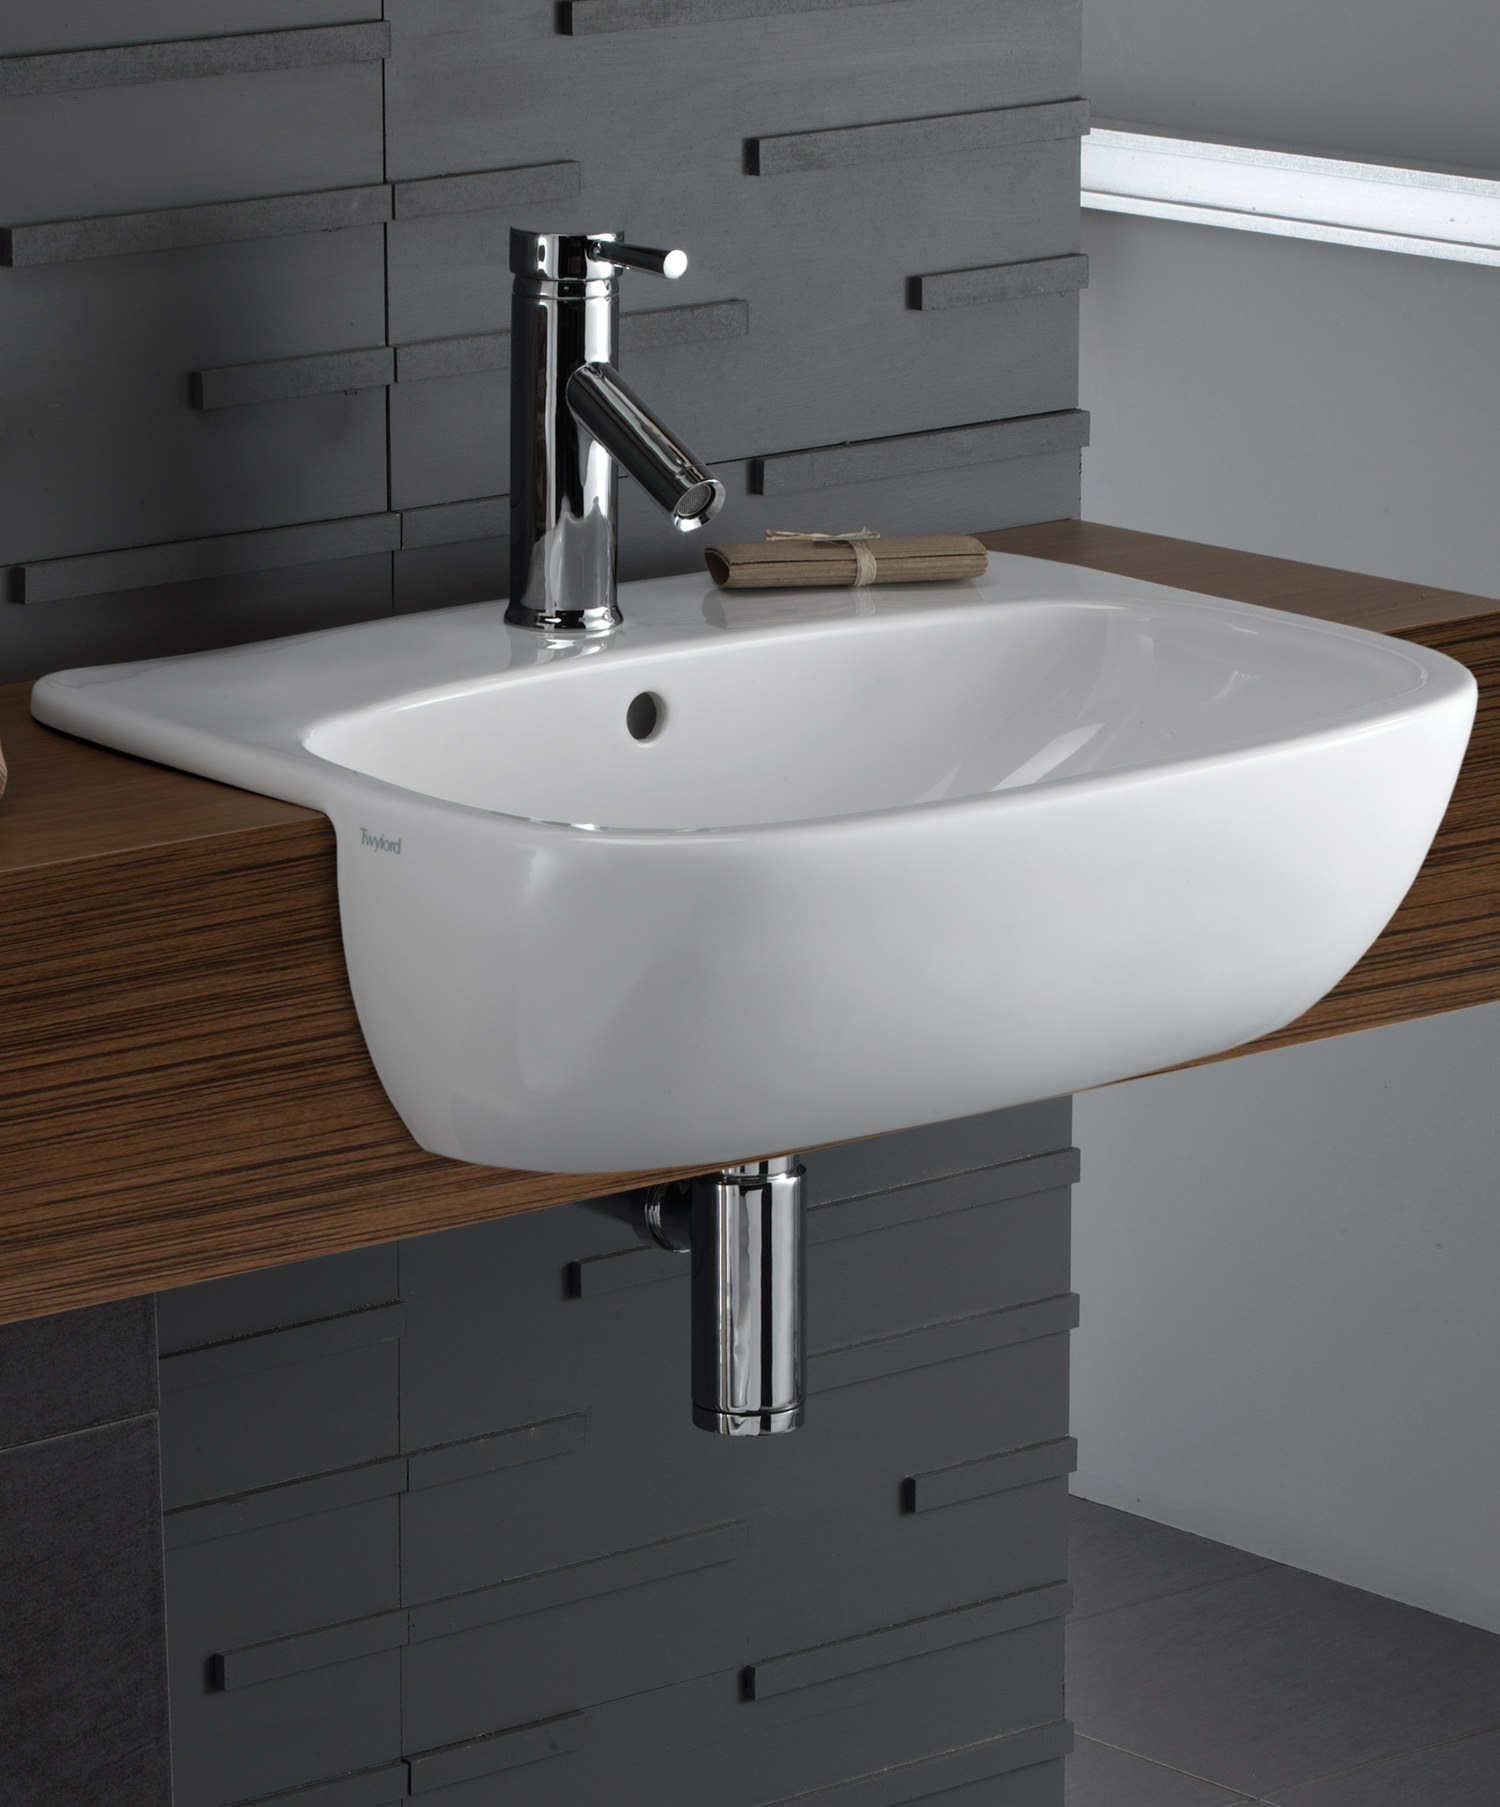 Twyford Moda 550mm Semi Recessed Basin